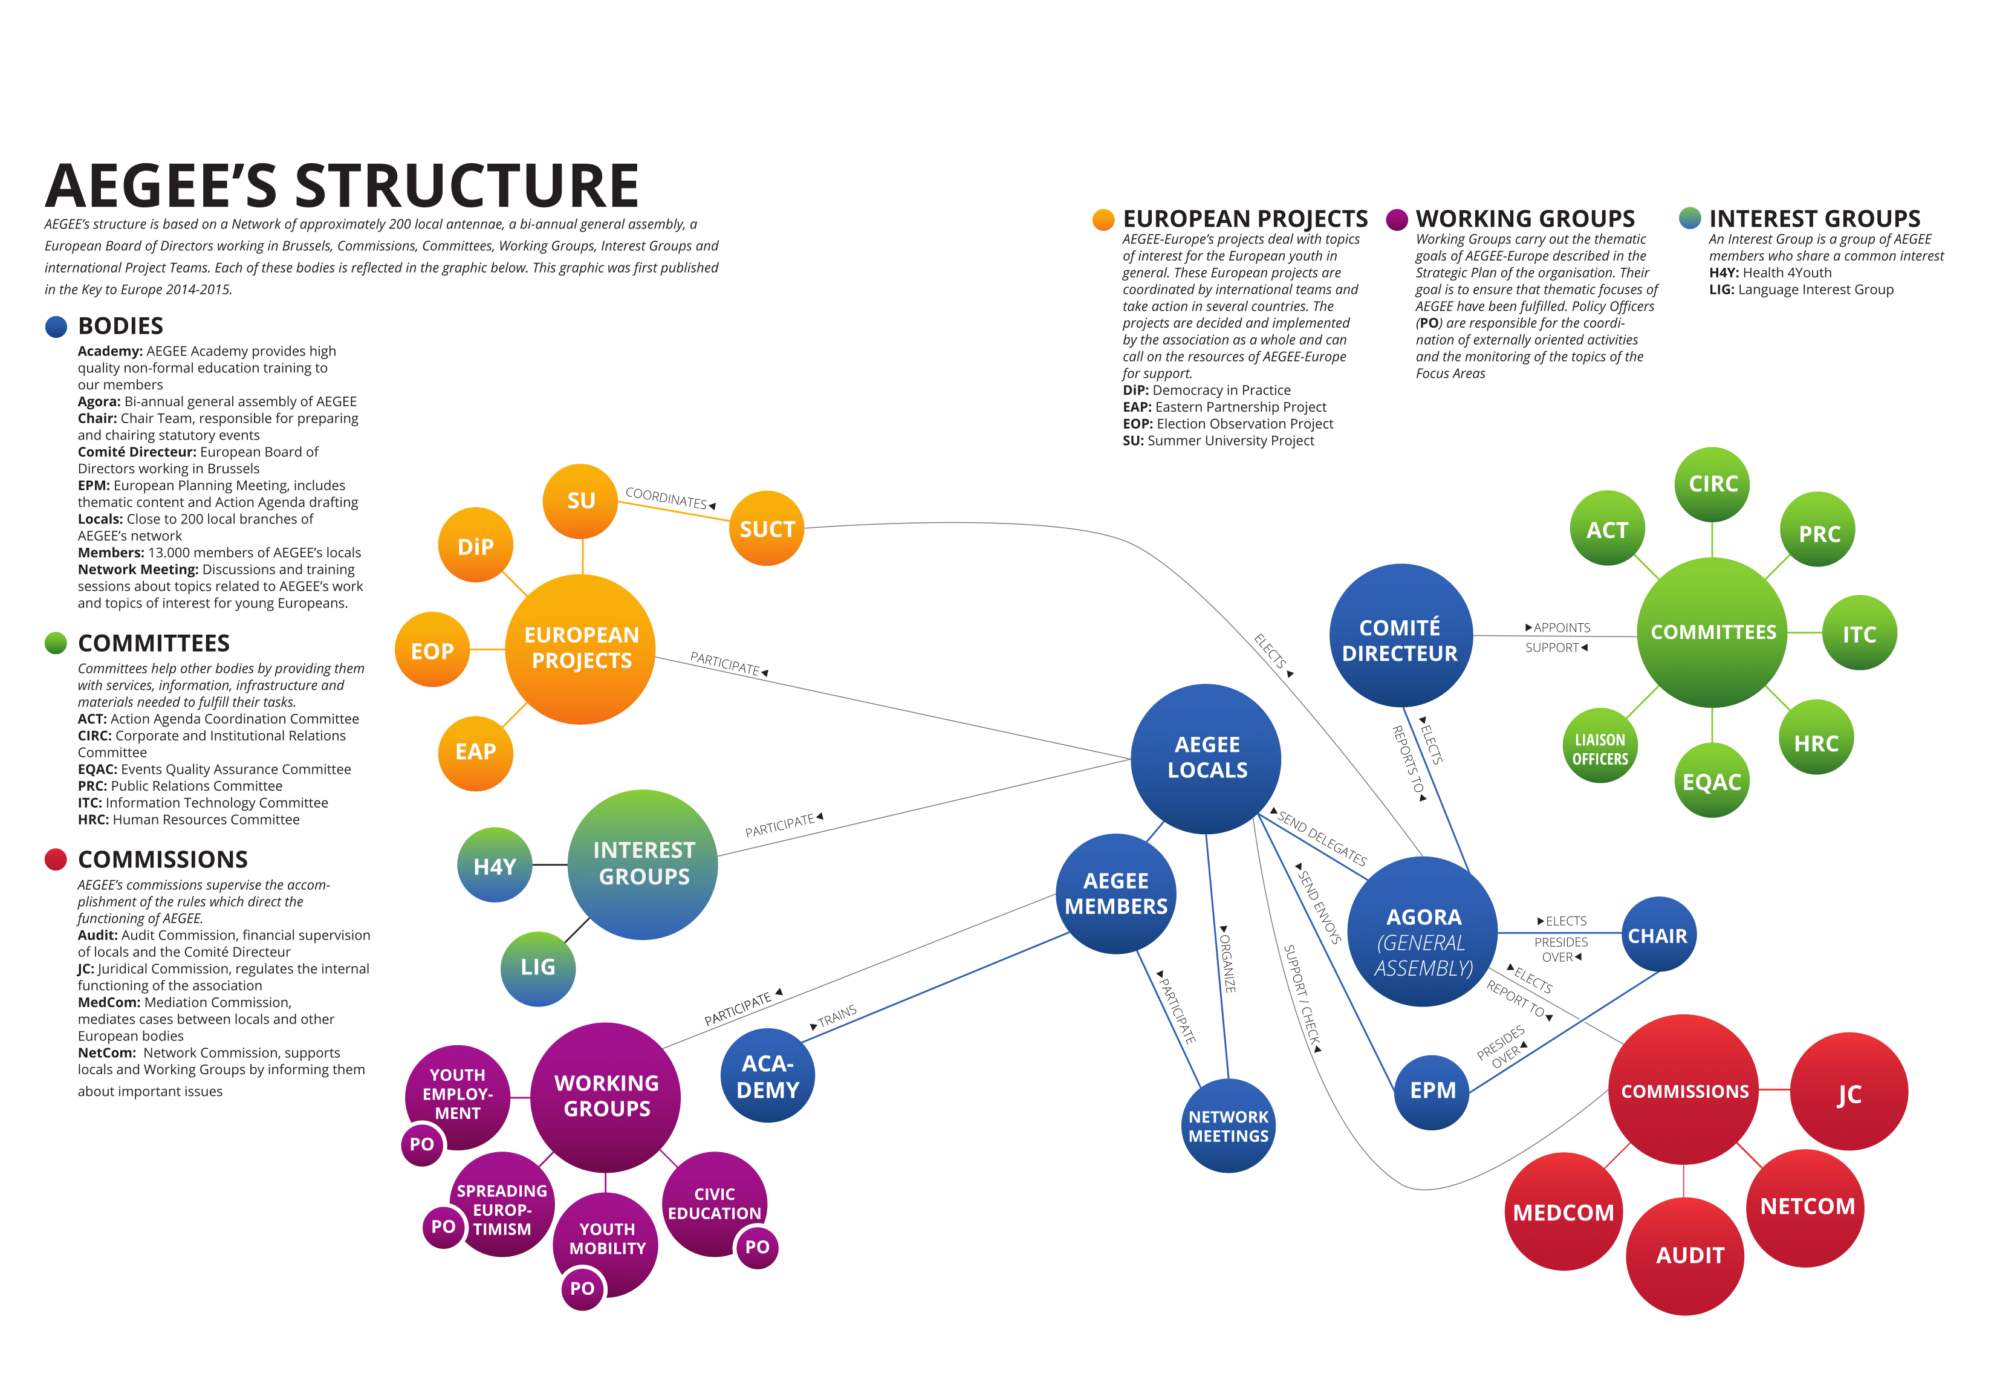 http://aegee-tallinn.ee/wp-content/uploads/2019/09/Structure-K2E-2015-1-1-2000x1400.png